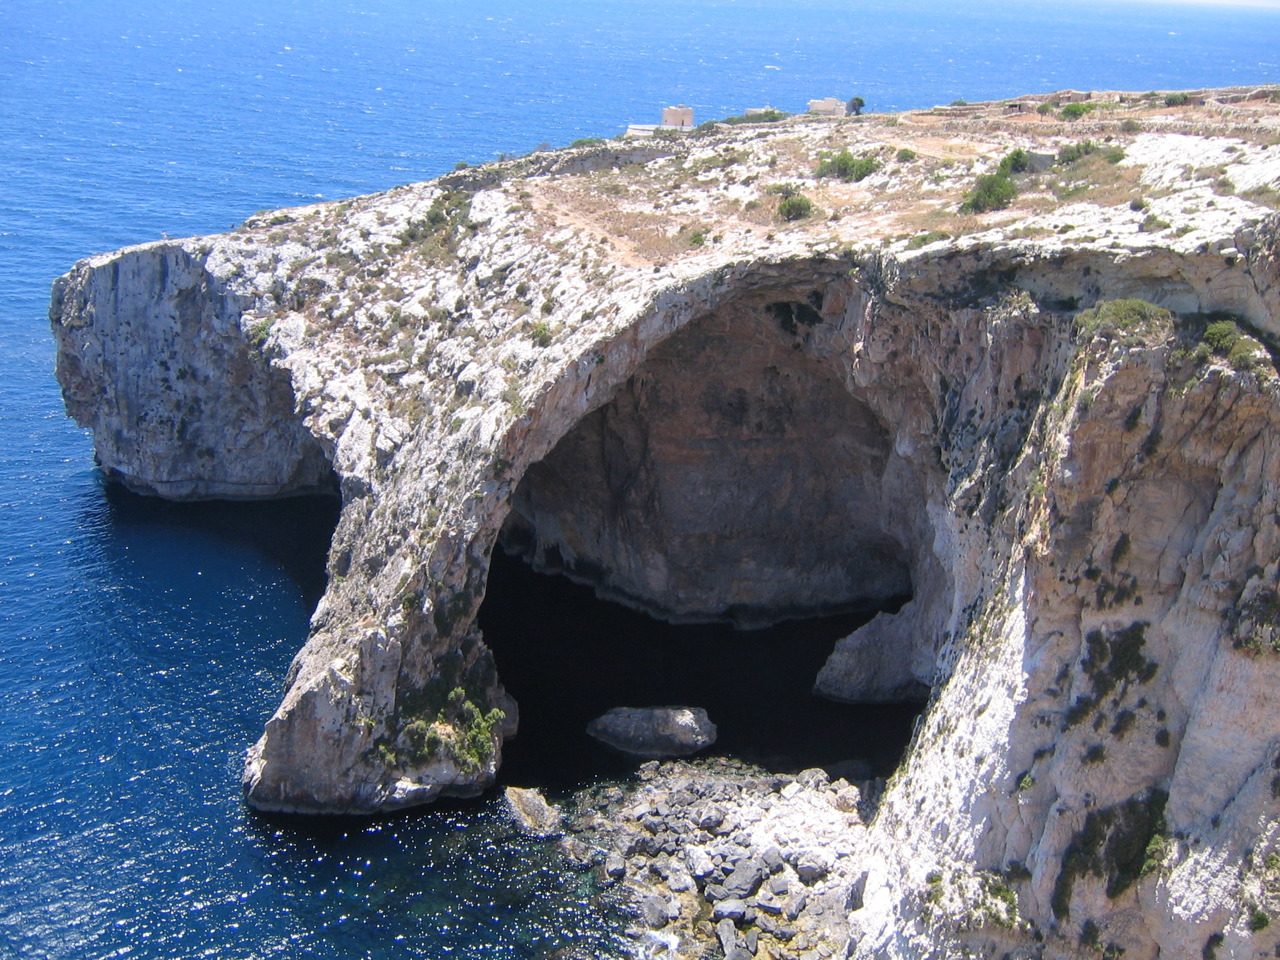 Blue Grotto. Fuente: Wikipedia